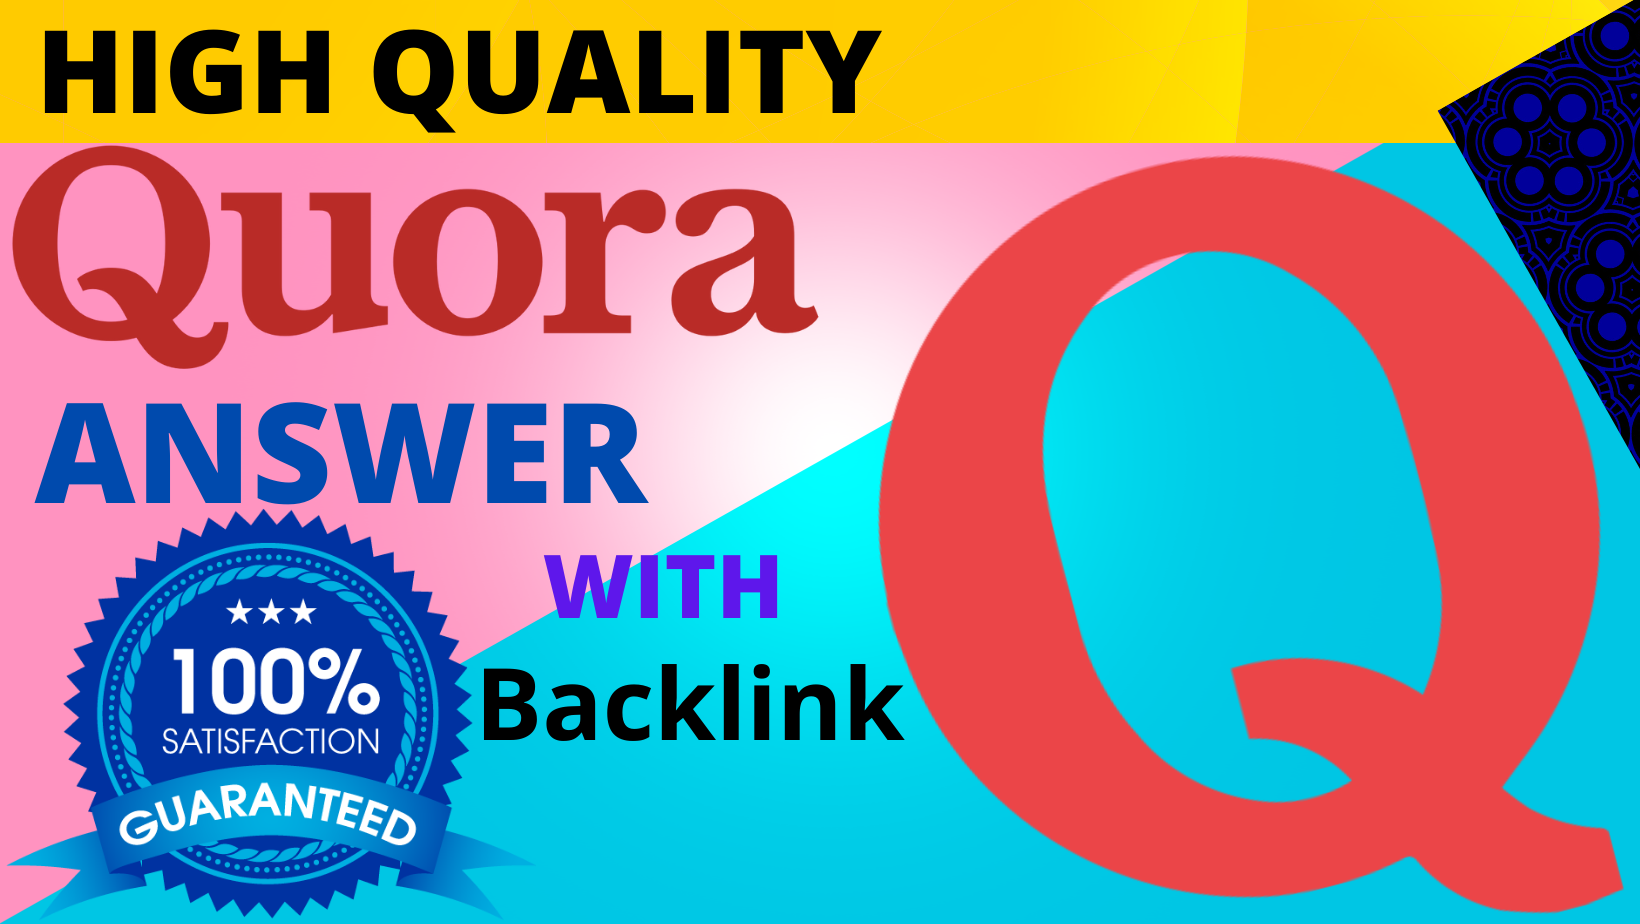 We will provide 50 HQ Quora Backlinks to get more traffic